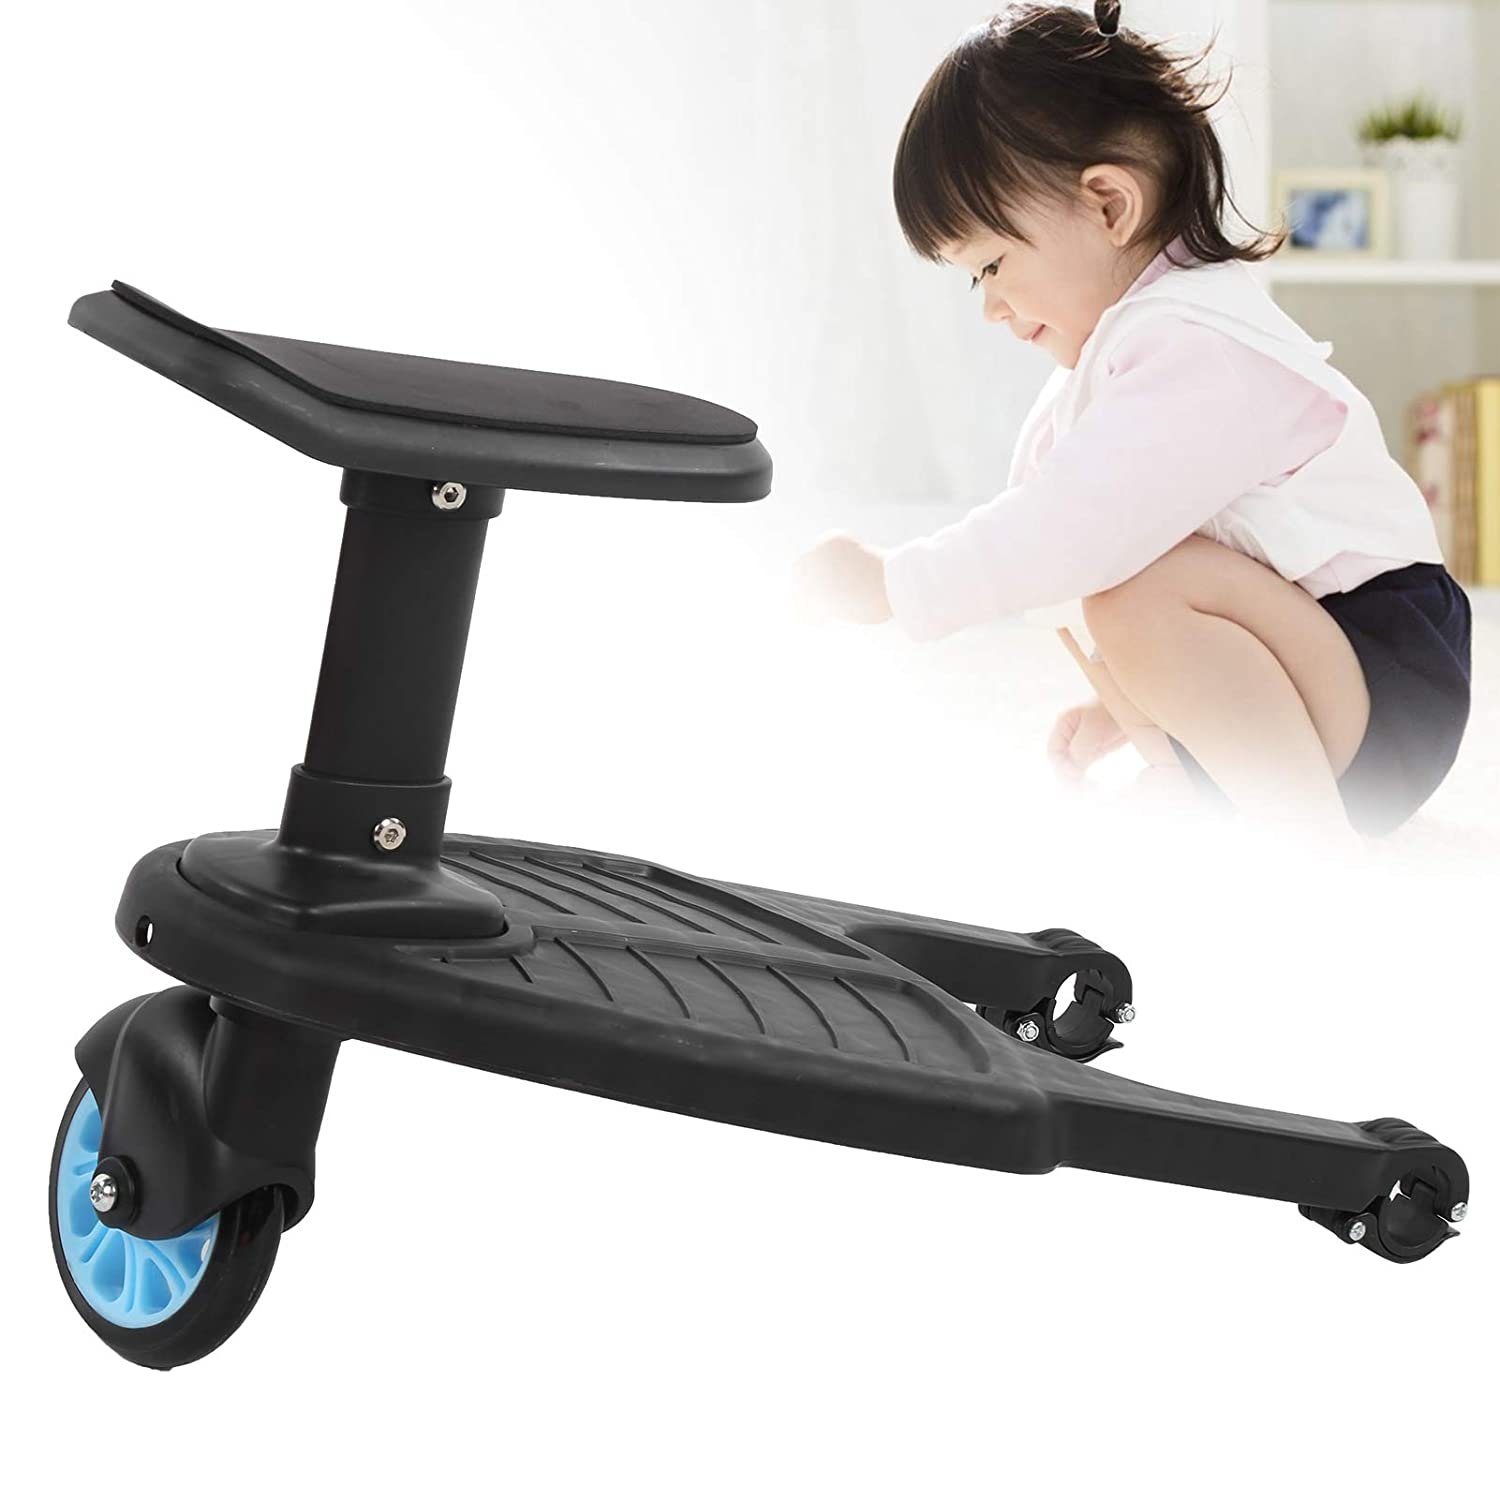 Stroller Max 66% OFF Popular standard Auxiliary Pedal Glider Board Universal Second